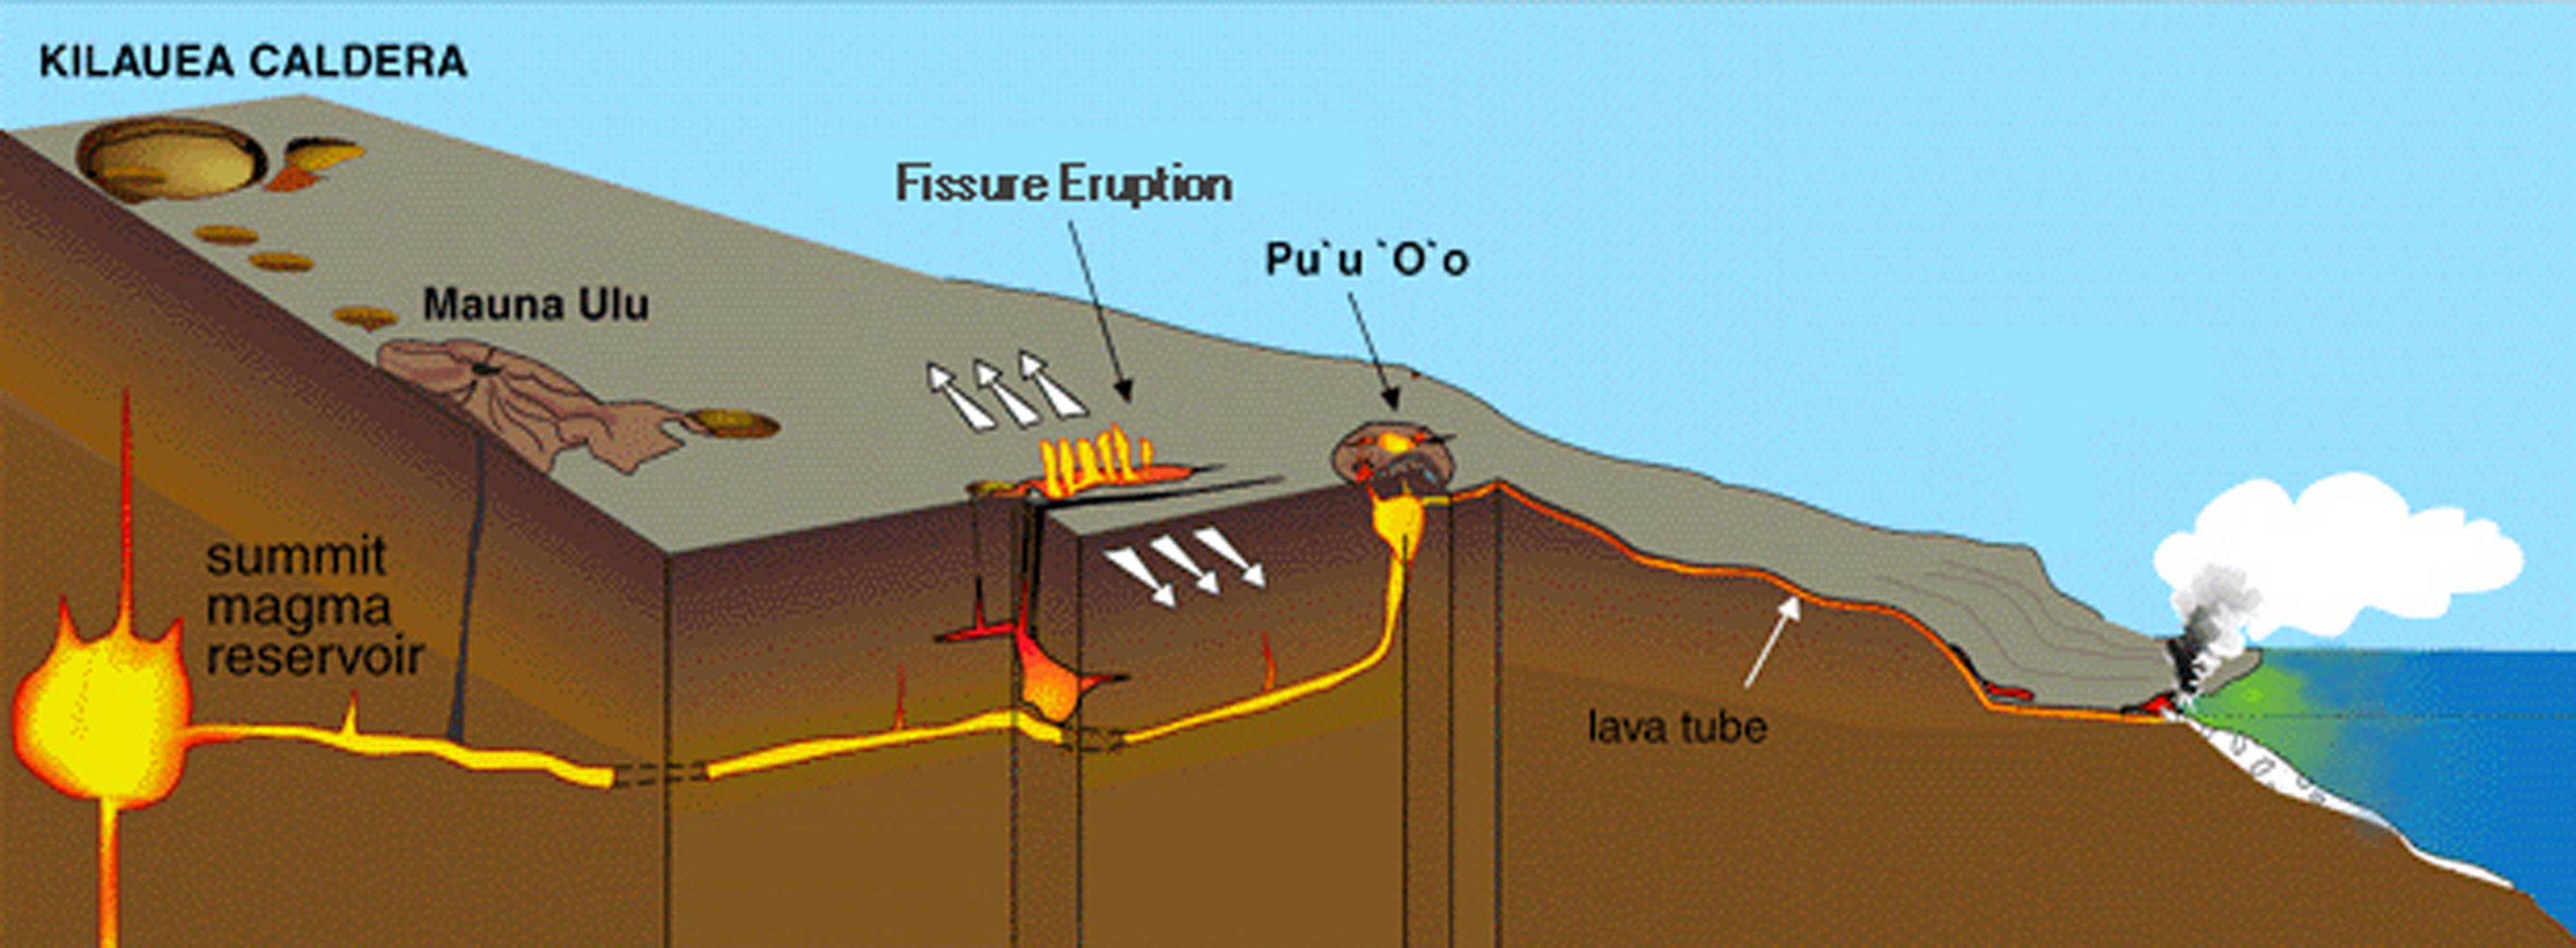 inside volcano diagram vent utility trailer light wiring of hawaii s kilauea zoom in on the image